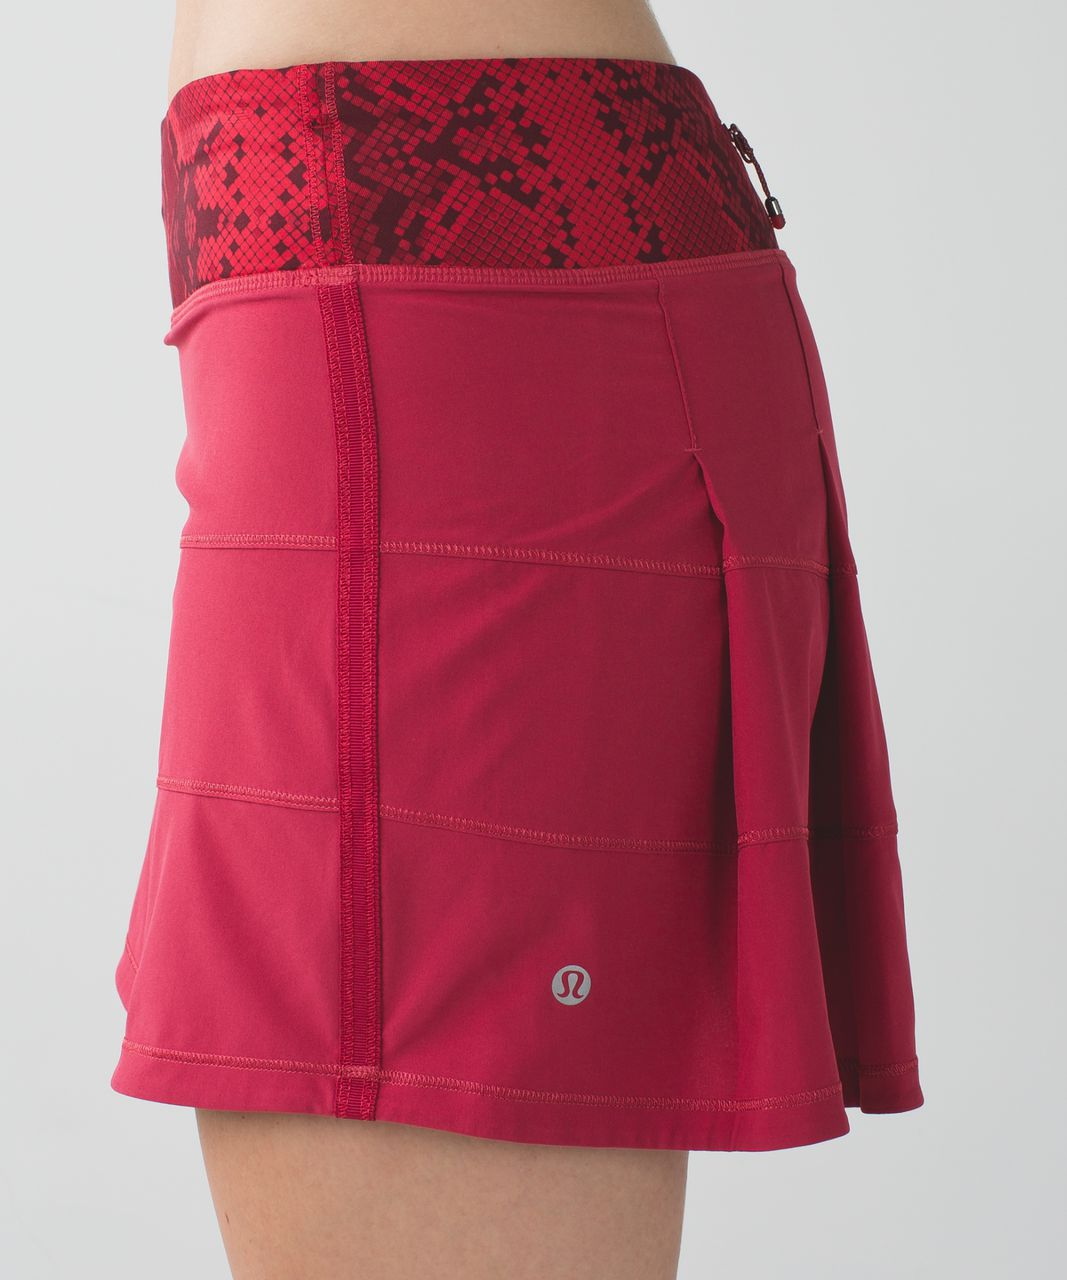 Lululemon Pace Rival Skirt II *4-way Stretch (Tall) - Cranberry / Mini Ziggy Snake Red Tide Cranberry